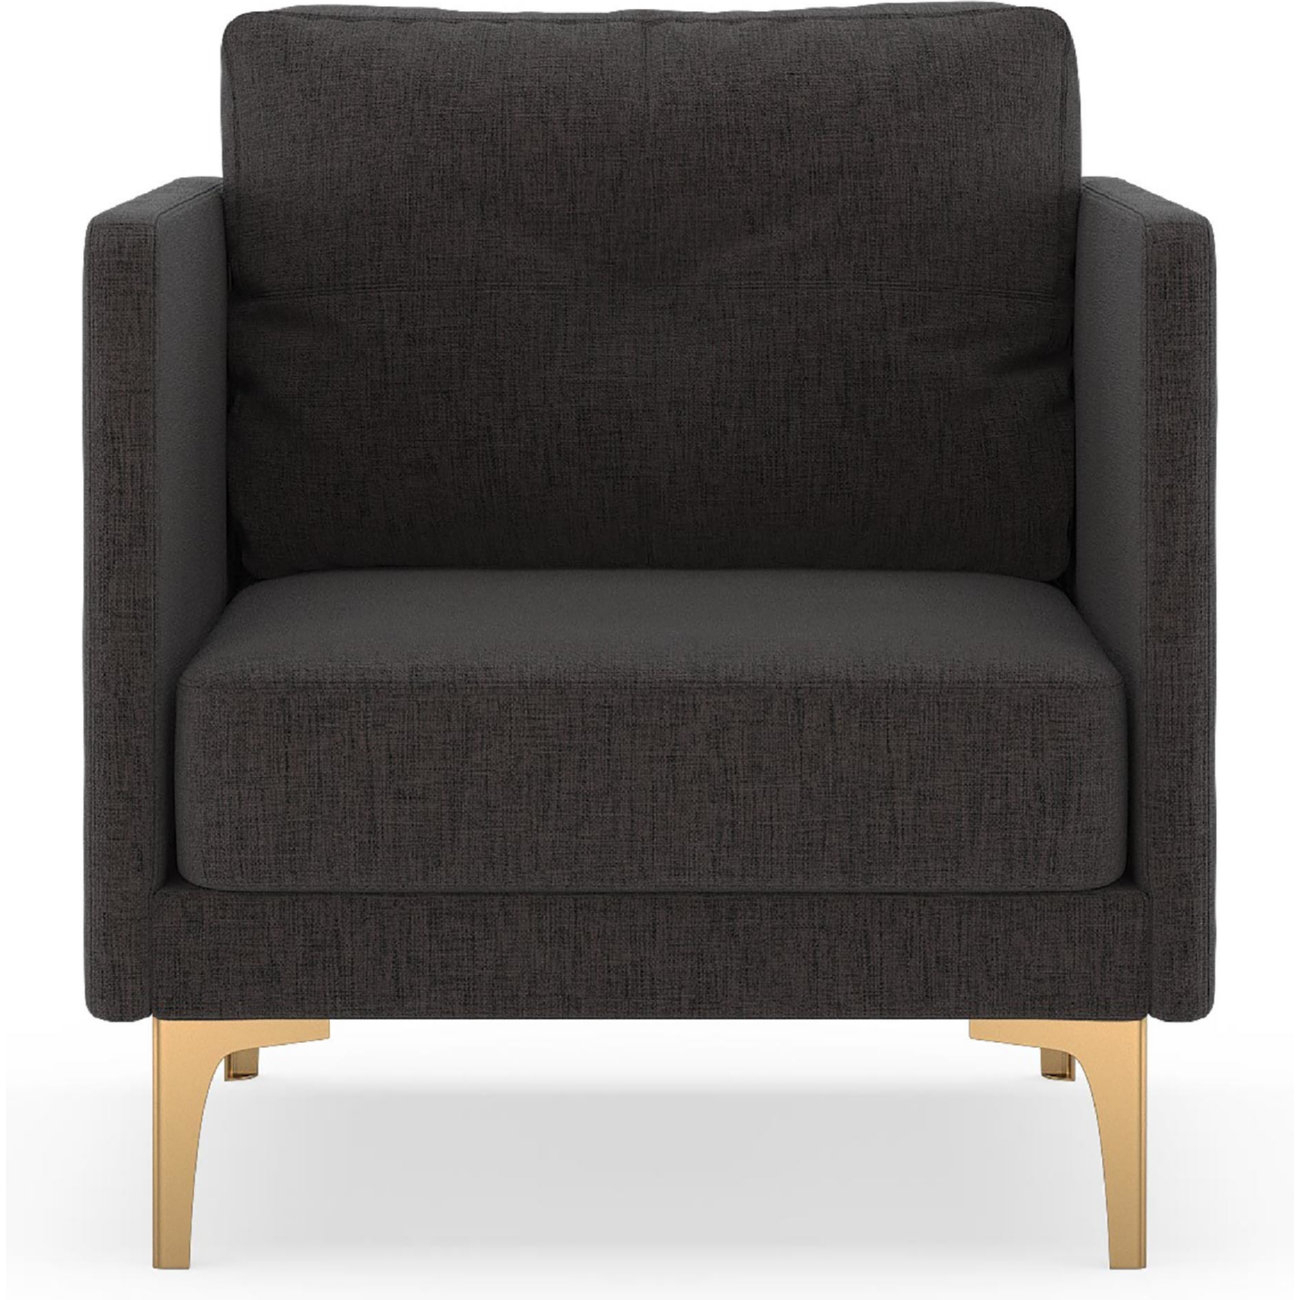 Nyekoncept 50060491 Tate Arm Chair In Slate Fabric On Brass Steel Inside Tate Arm Sofa Chairs (Image 11 of 25)